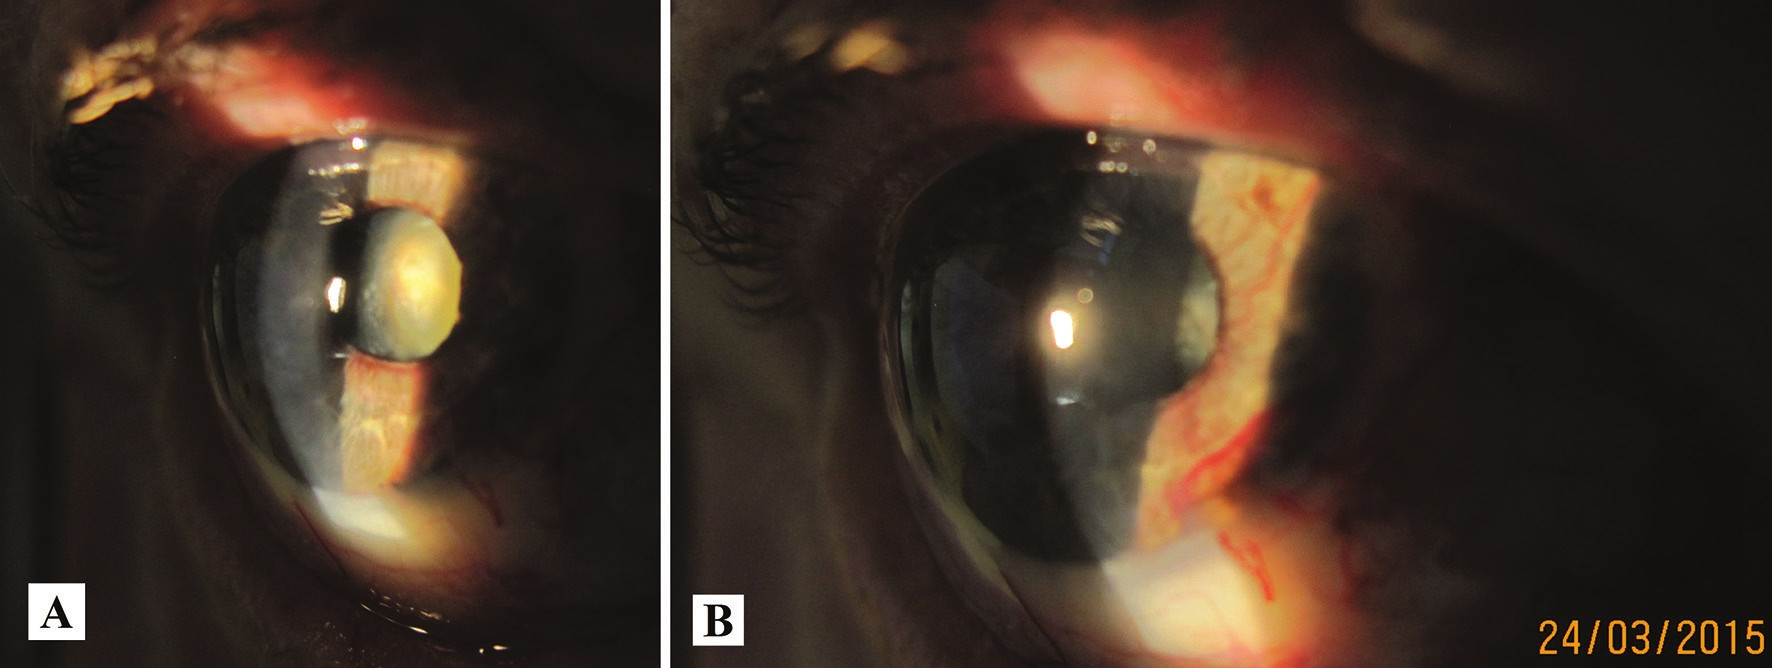 Macro photo of anterior segment of eye of same patient in 2015 – progression of cataract (A), accentuation of neovascularisation of isis (B)